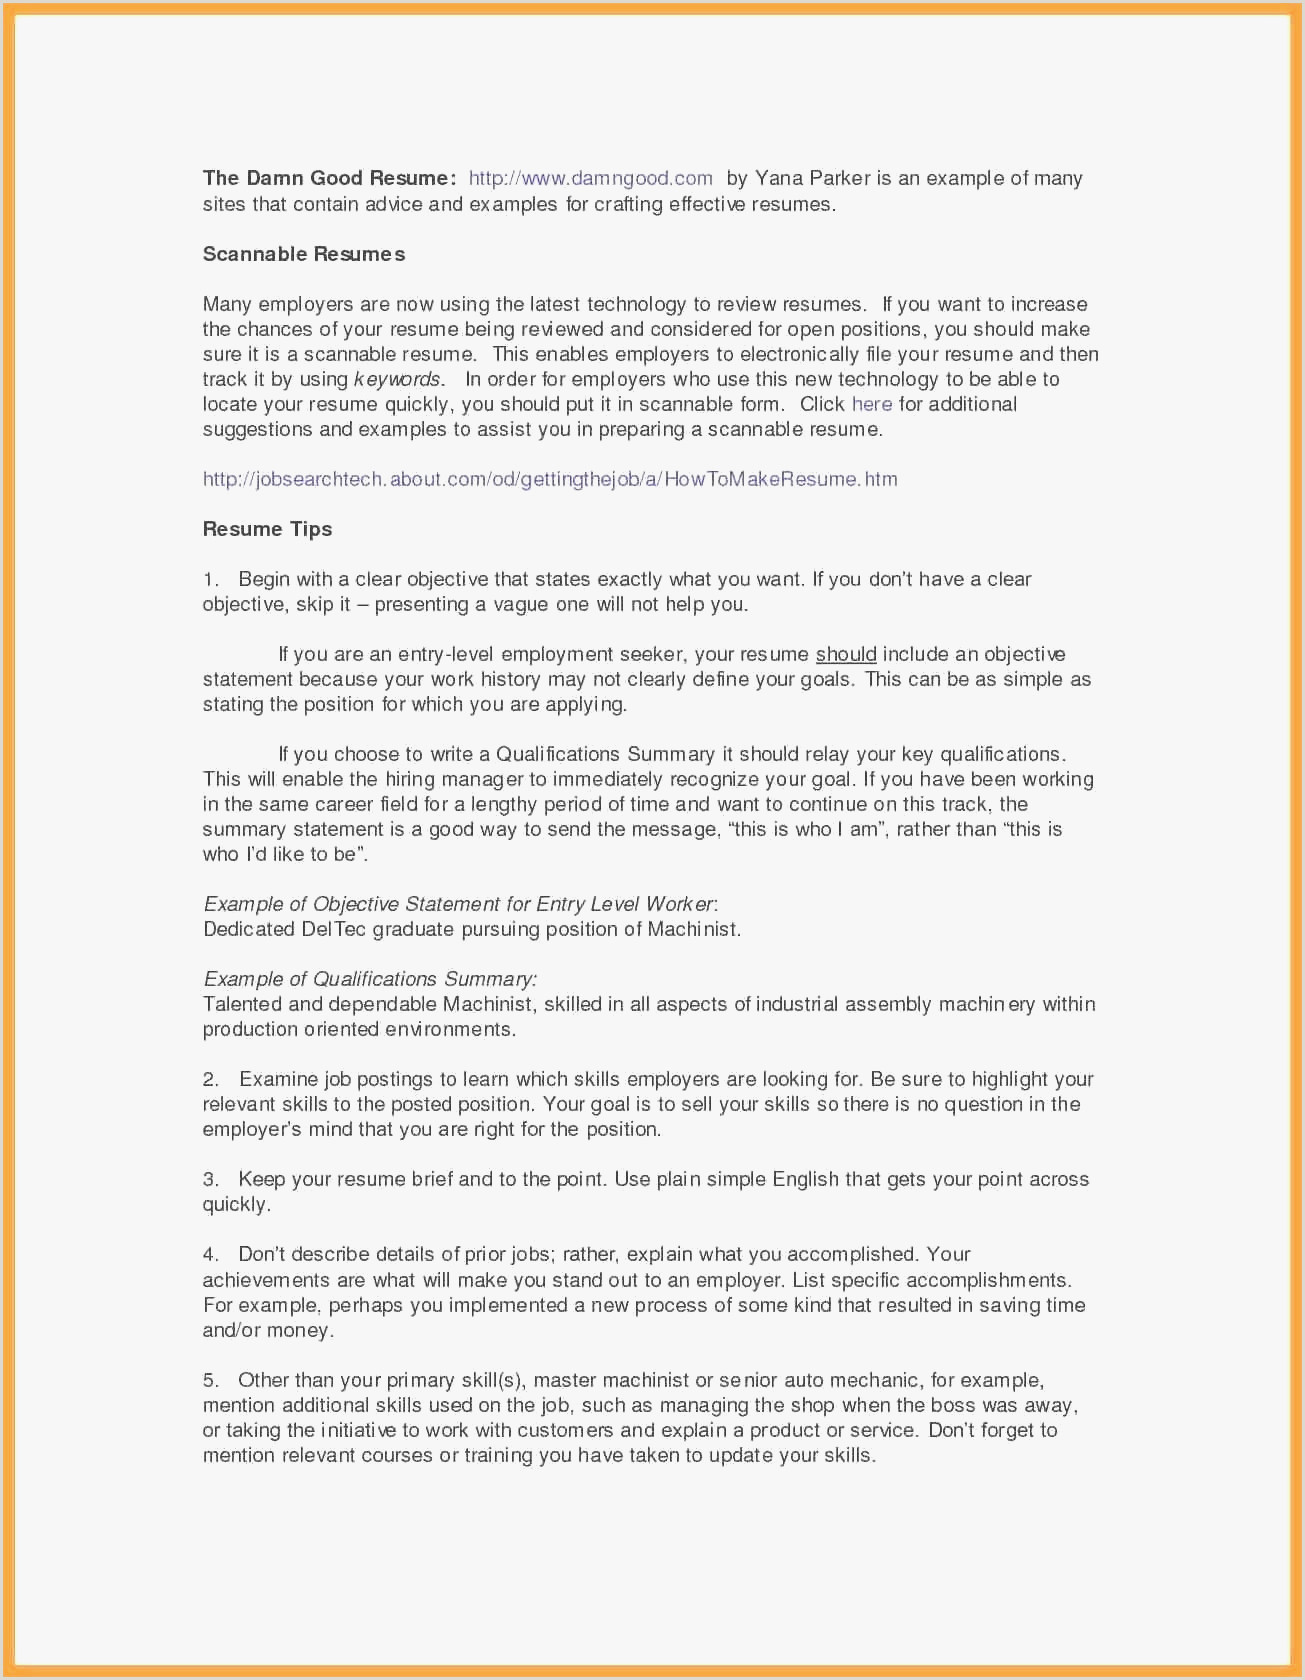 Sample Resume for Call Center without Experience Resumes Customer Service Skills Professional Call Center